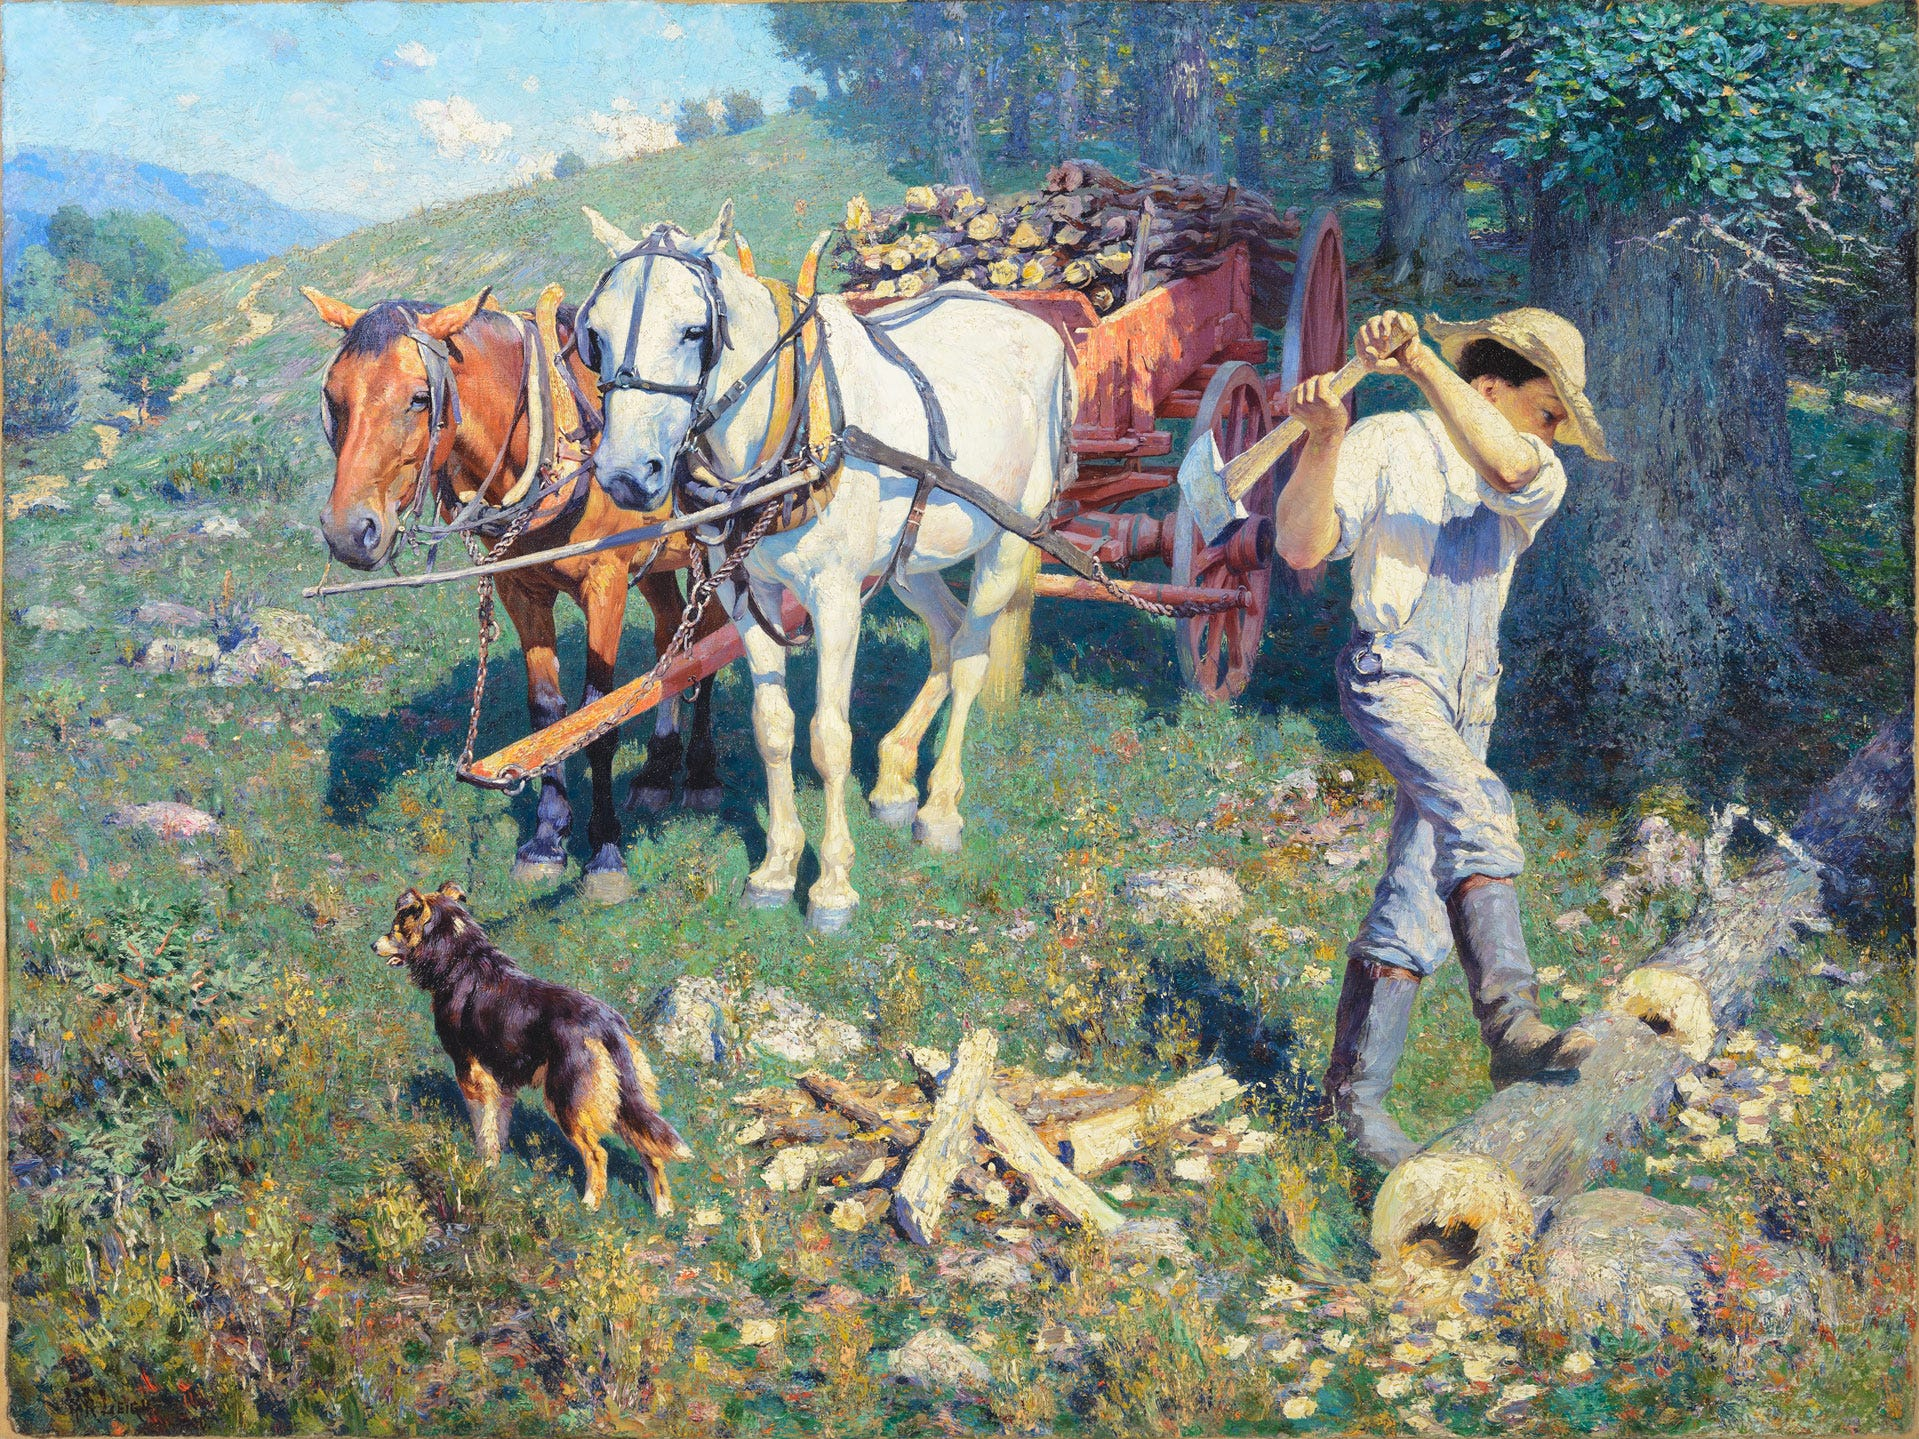 """West Virginia Woodchopper"" by William r. Leigh, valued at up to $500,000, to be auctioned July 28, 2018 as part of the Coeur d'Alene Art Auction in Reno."